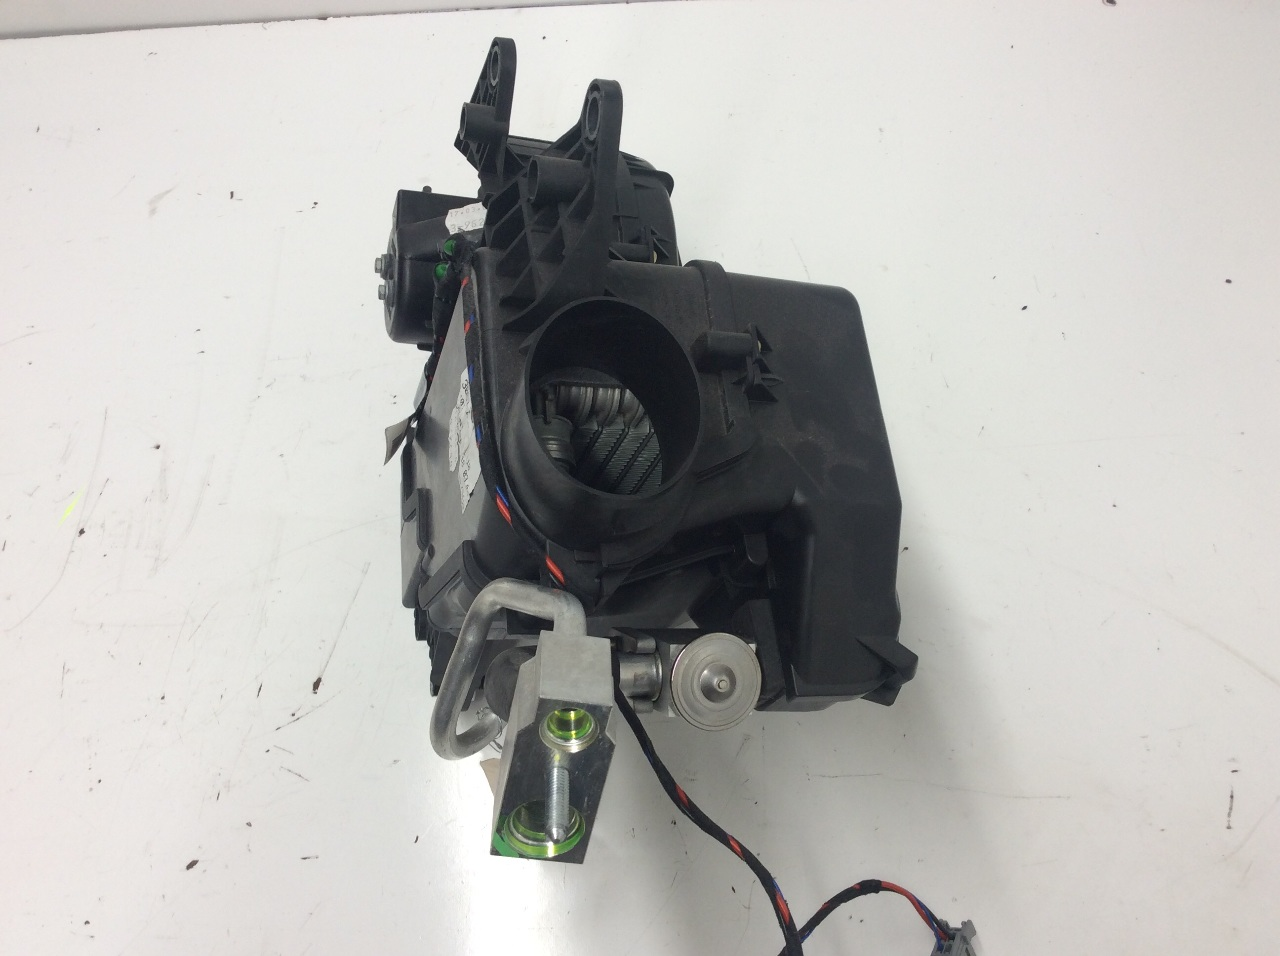 2004 Volvo Xc90 Wiring Fan Schematic Diagram Also Serpentine Belt On 98 S70 Engine 2003 2005 2006 Rear Heater Blower Motor And Housing 2010